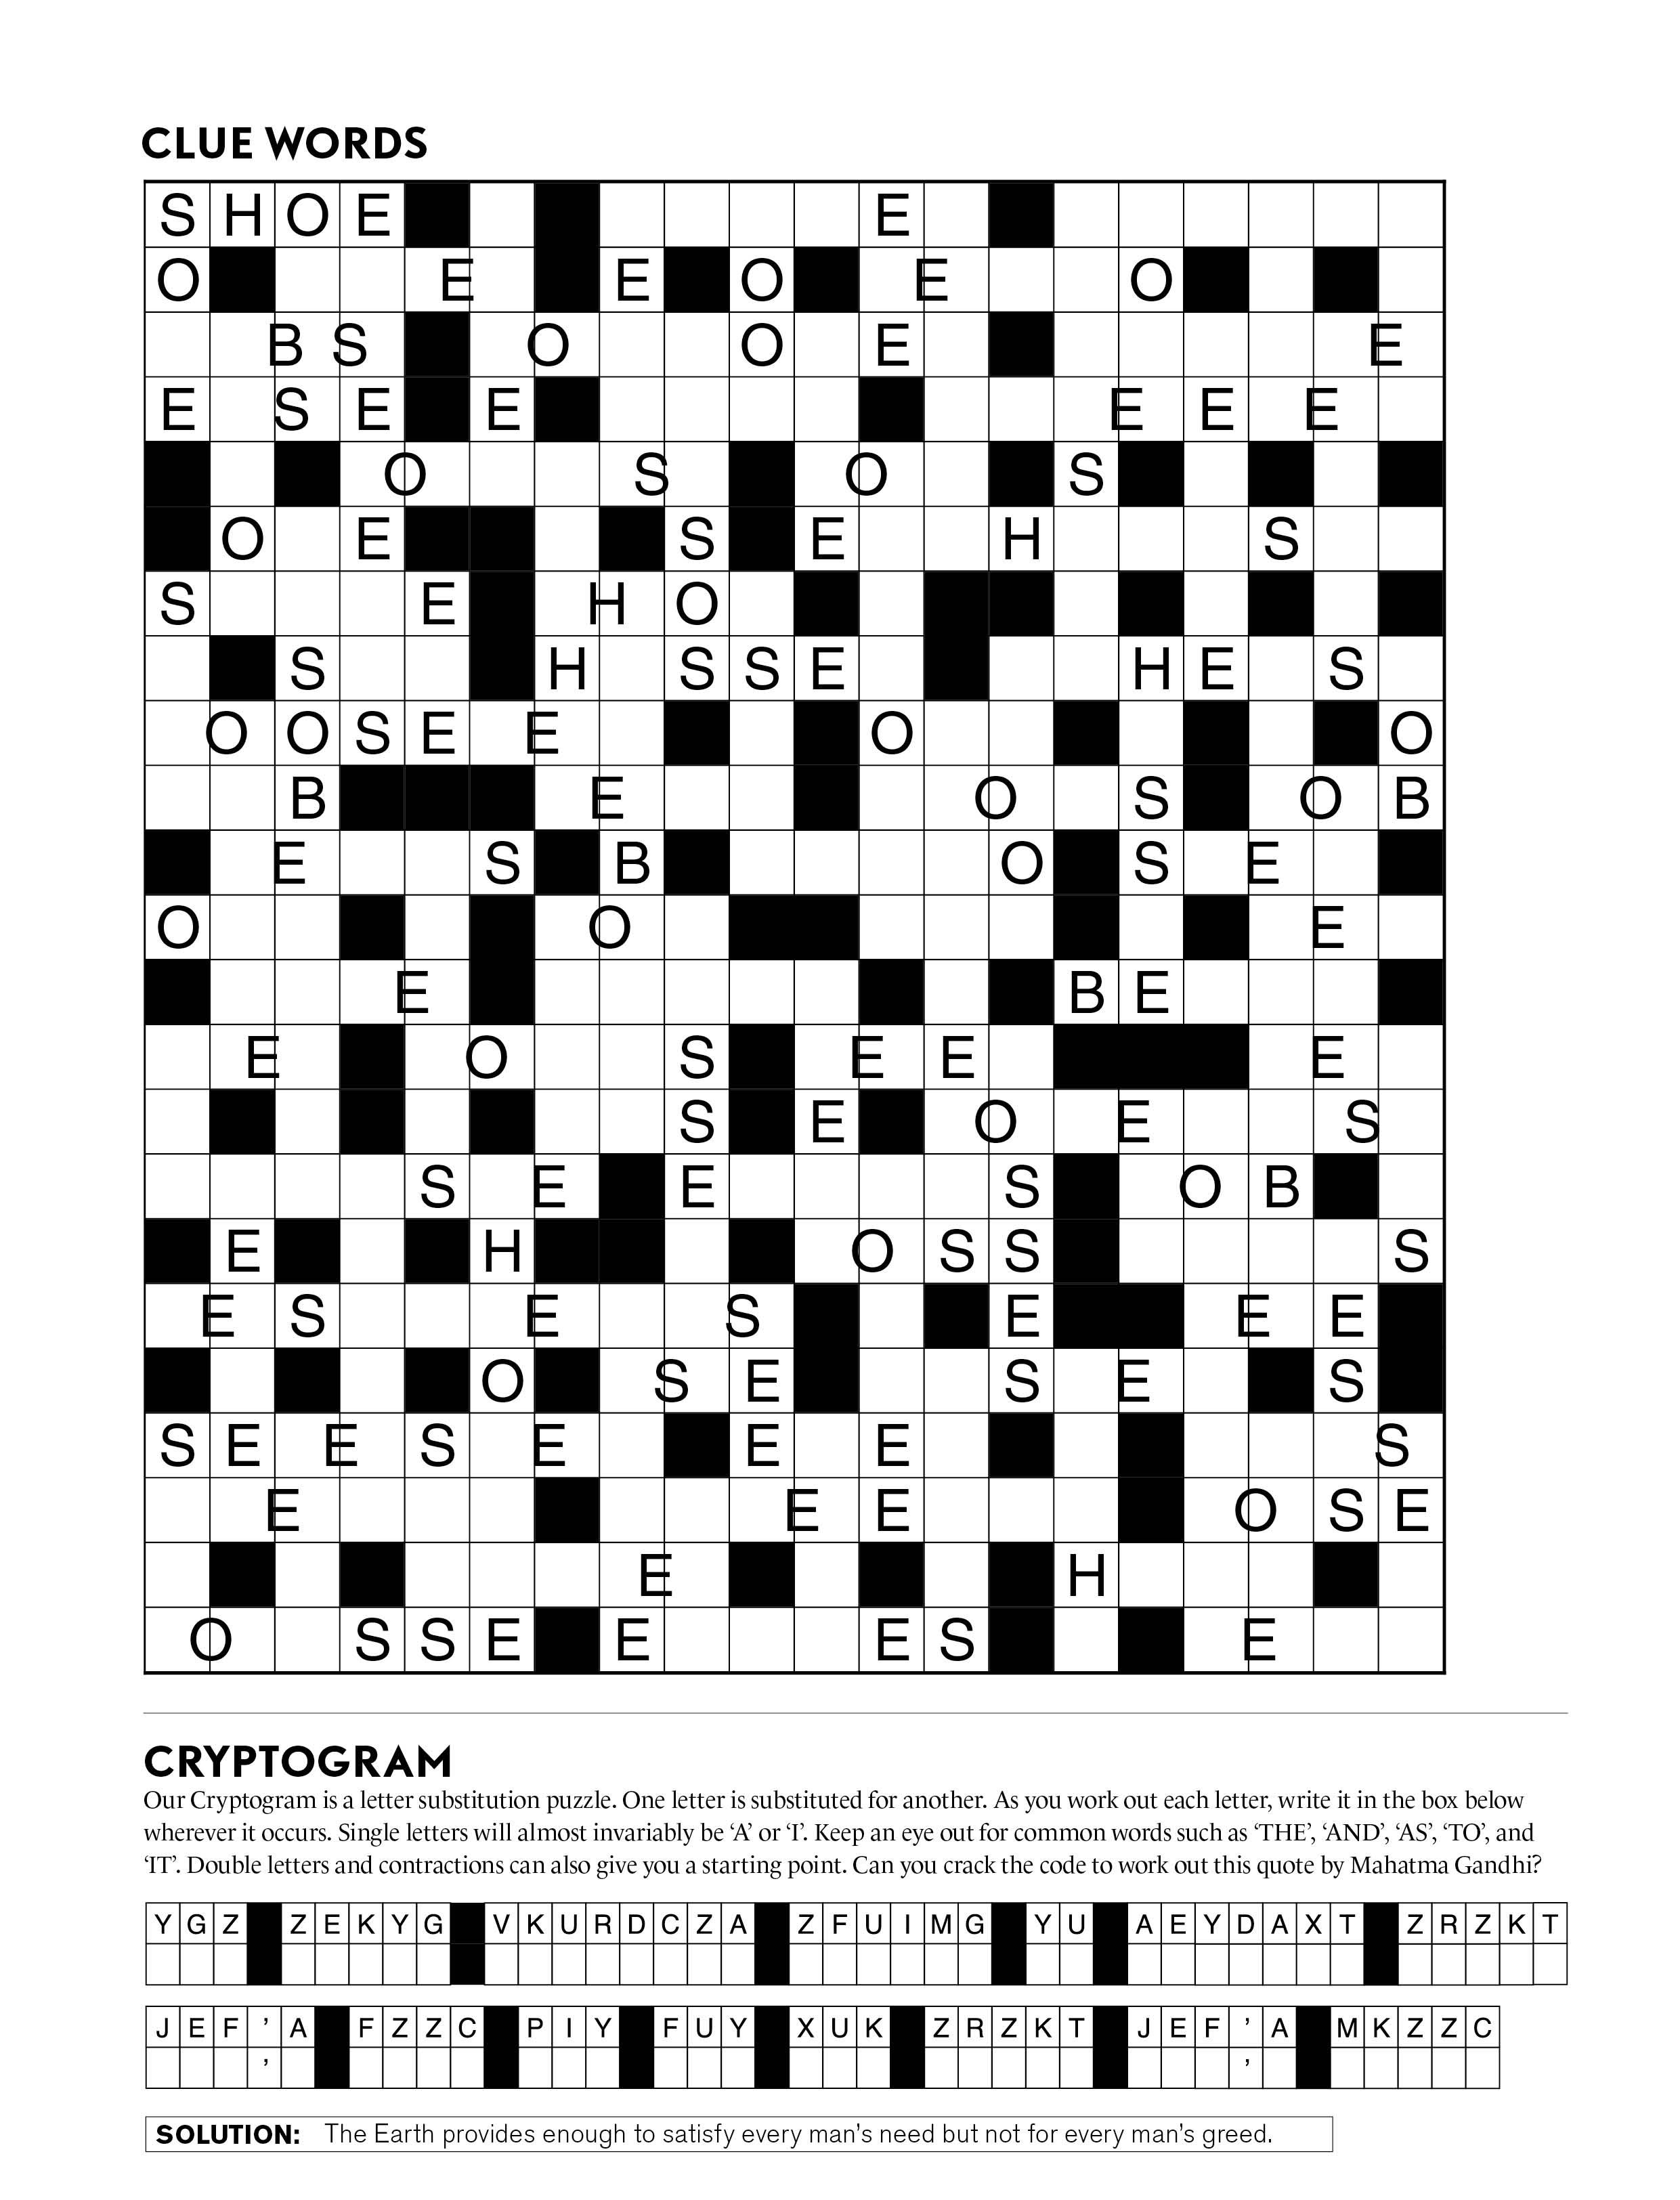 Best for puzzles great resource looking for the right word use best for puzzles great resource looking for the right word use catalist crossword solver 100 categorized lists with choices that allow you ccuart Image collections